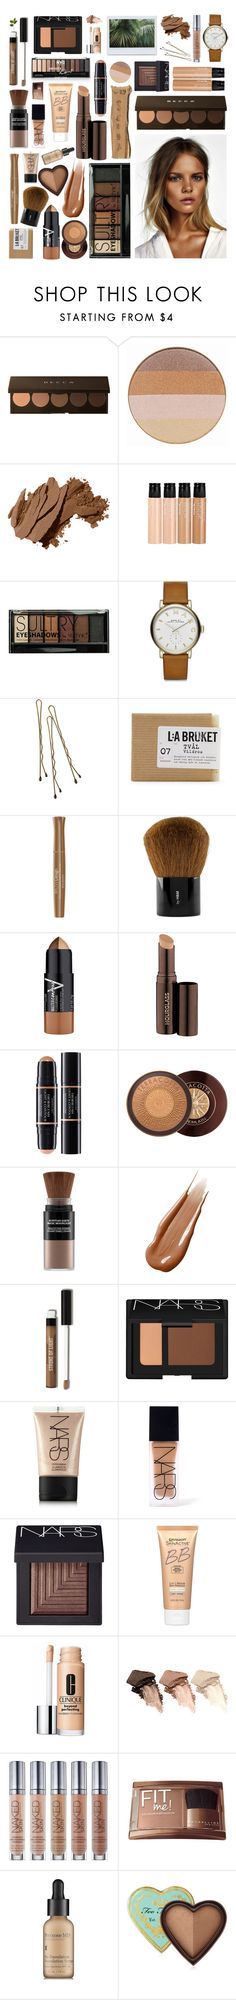 """""""nude by nature"""" by larazar ❤ liked on Polyvore featuring beauty, Becca, Jane Iredale, Bobbi Brown Cosmetics, mark., Boohoo, Marc by Marc Jacobs, Retrò, Club Monaco and Bourjois"""